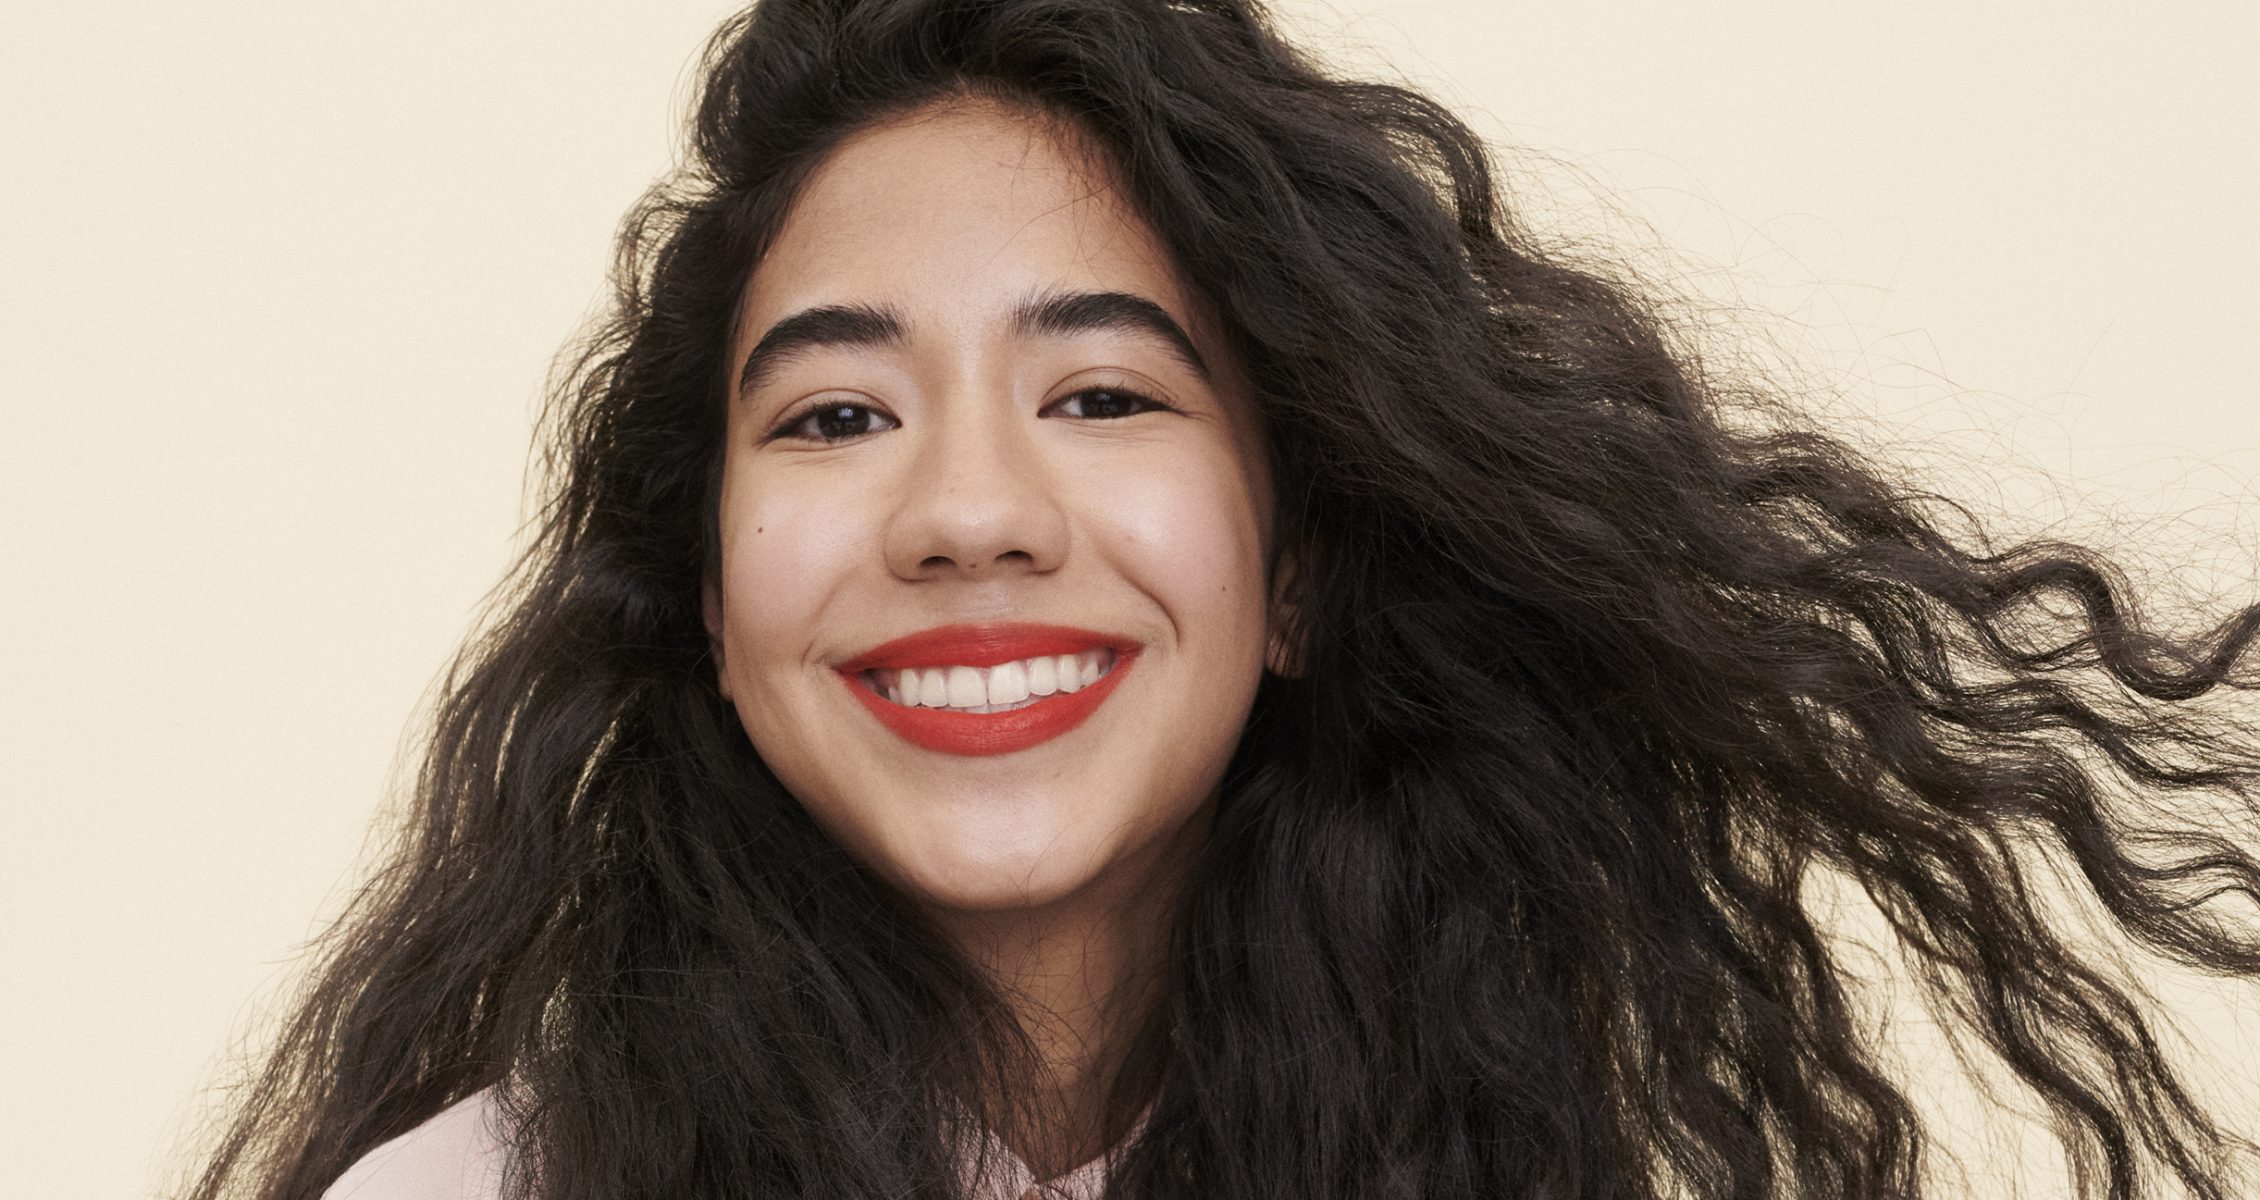 girl with long, black wavy hair smiles at the camera while wearing red lipstick